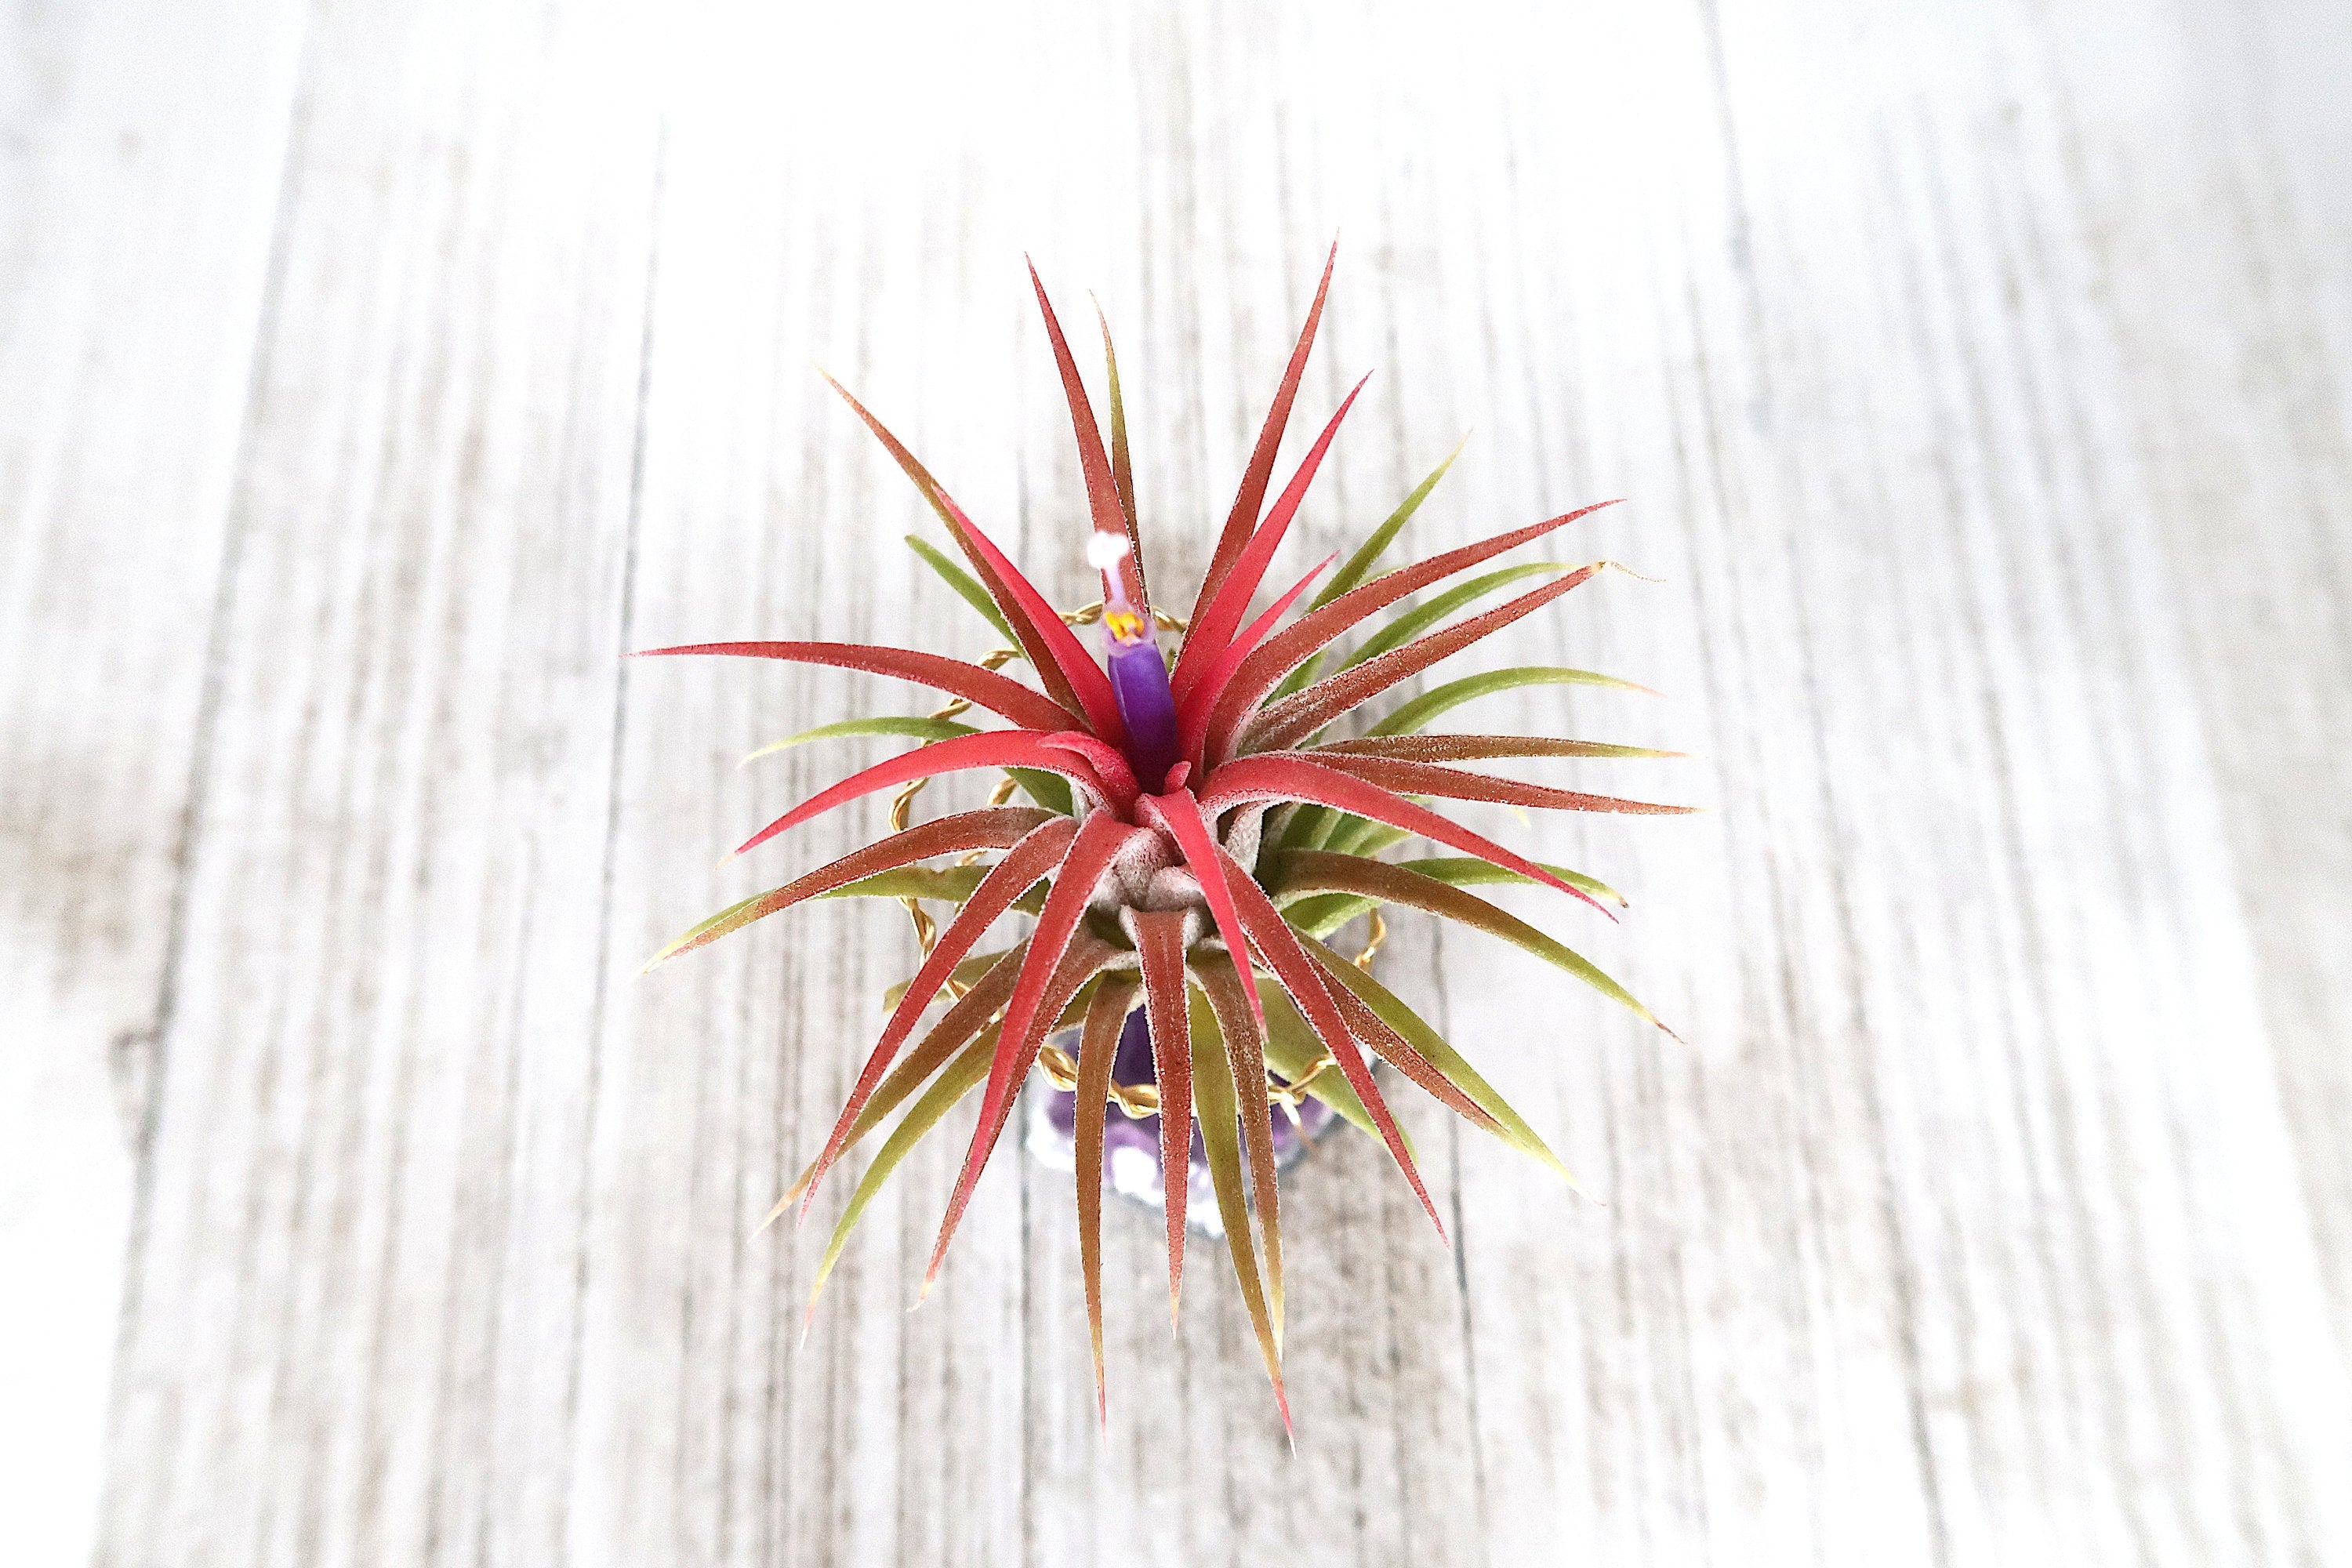 Amethyst Air plant Wired Holder for Intuitives, Air Plant Crystal, Air Plant Holder Desk, Air Plant Display, Air Plant Gift, Air Plant Stand